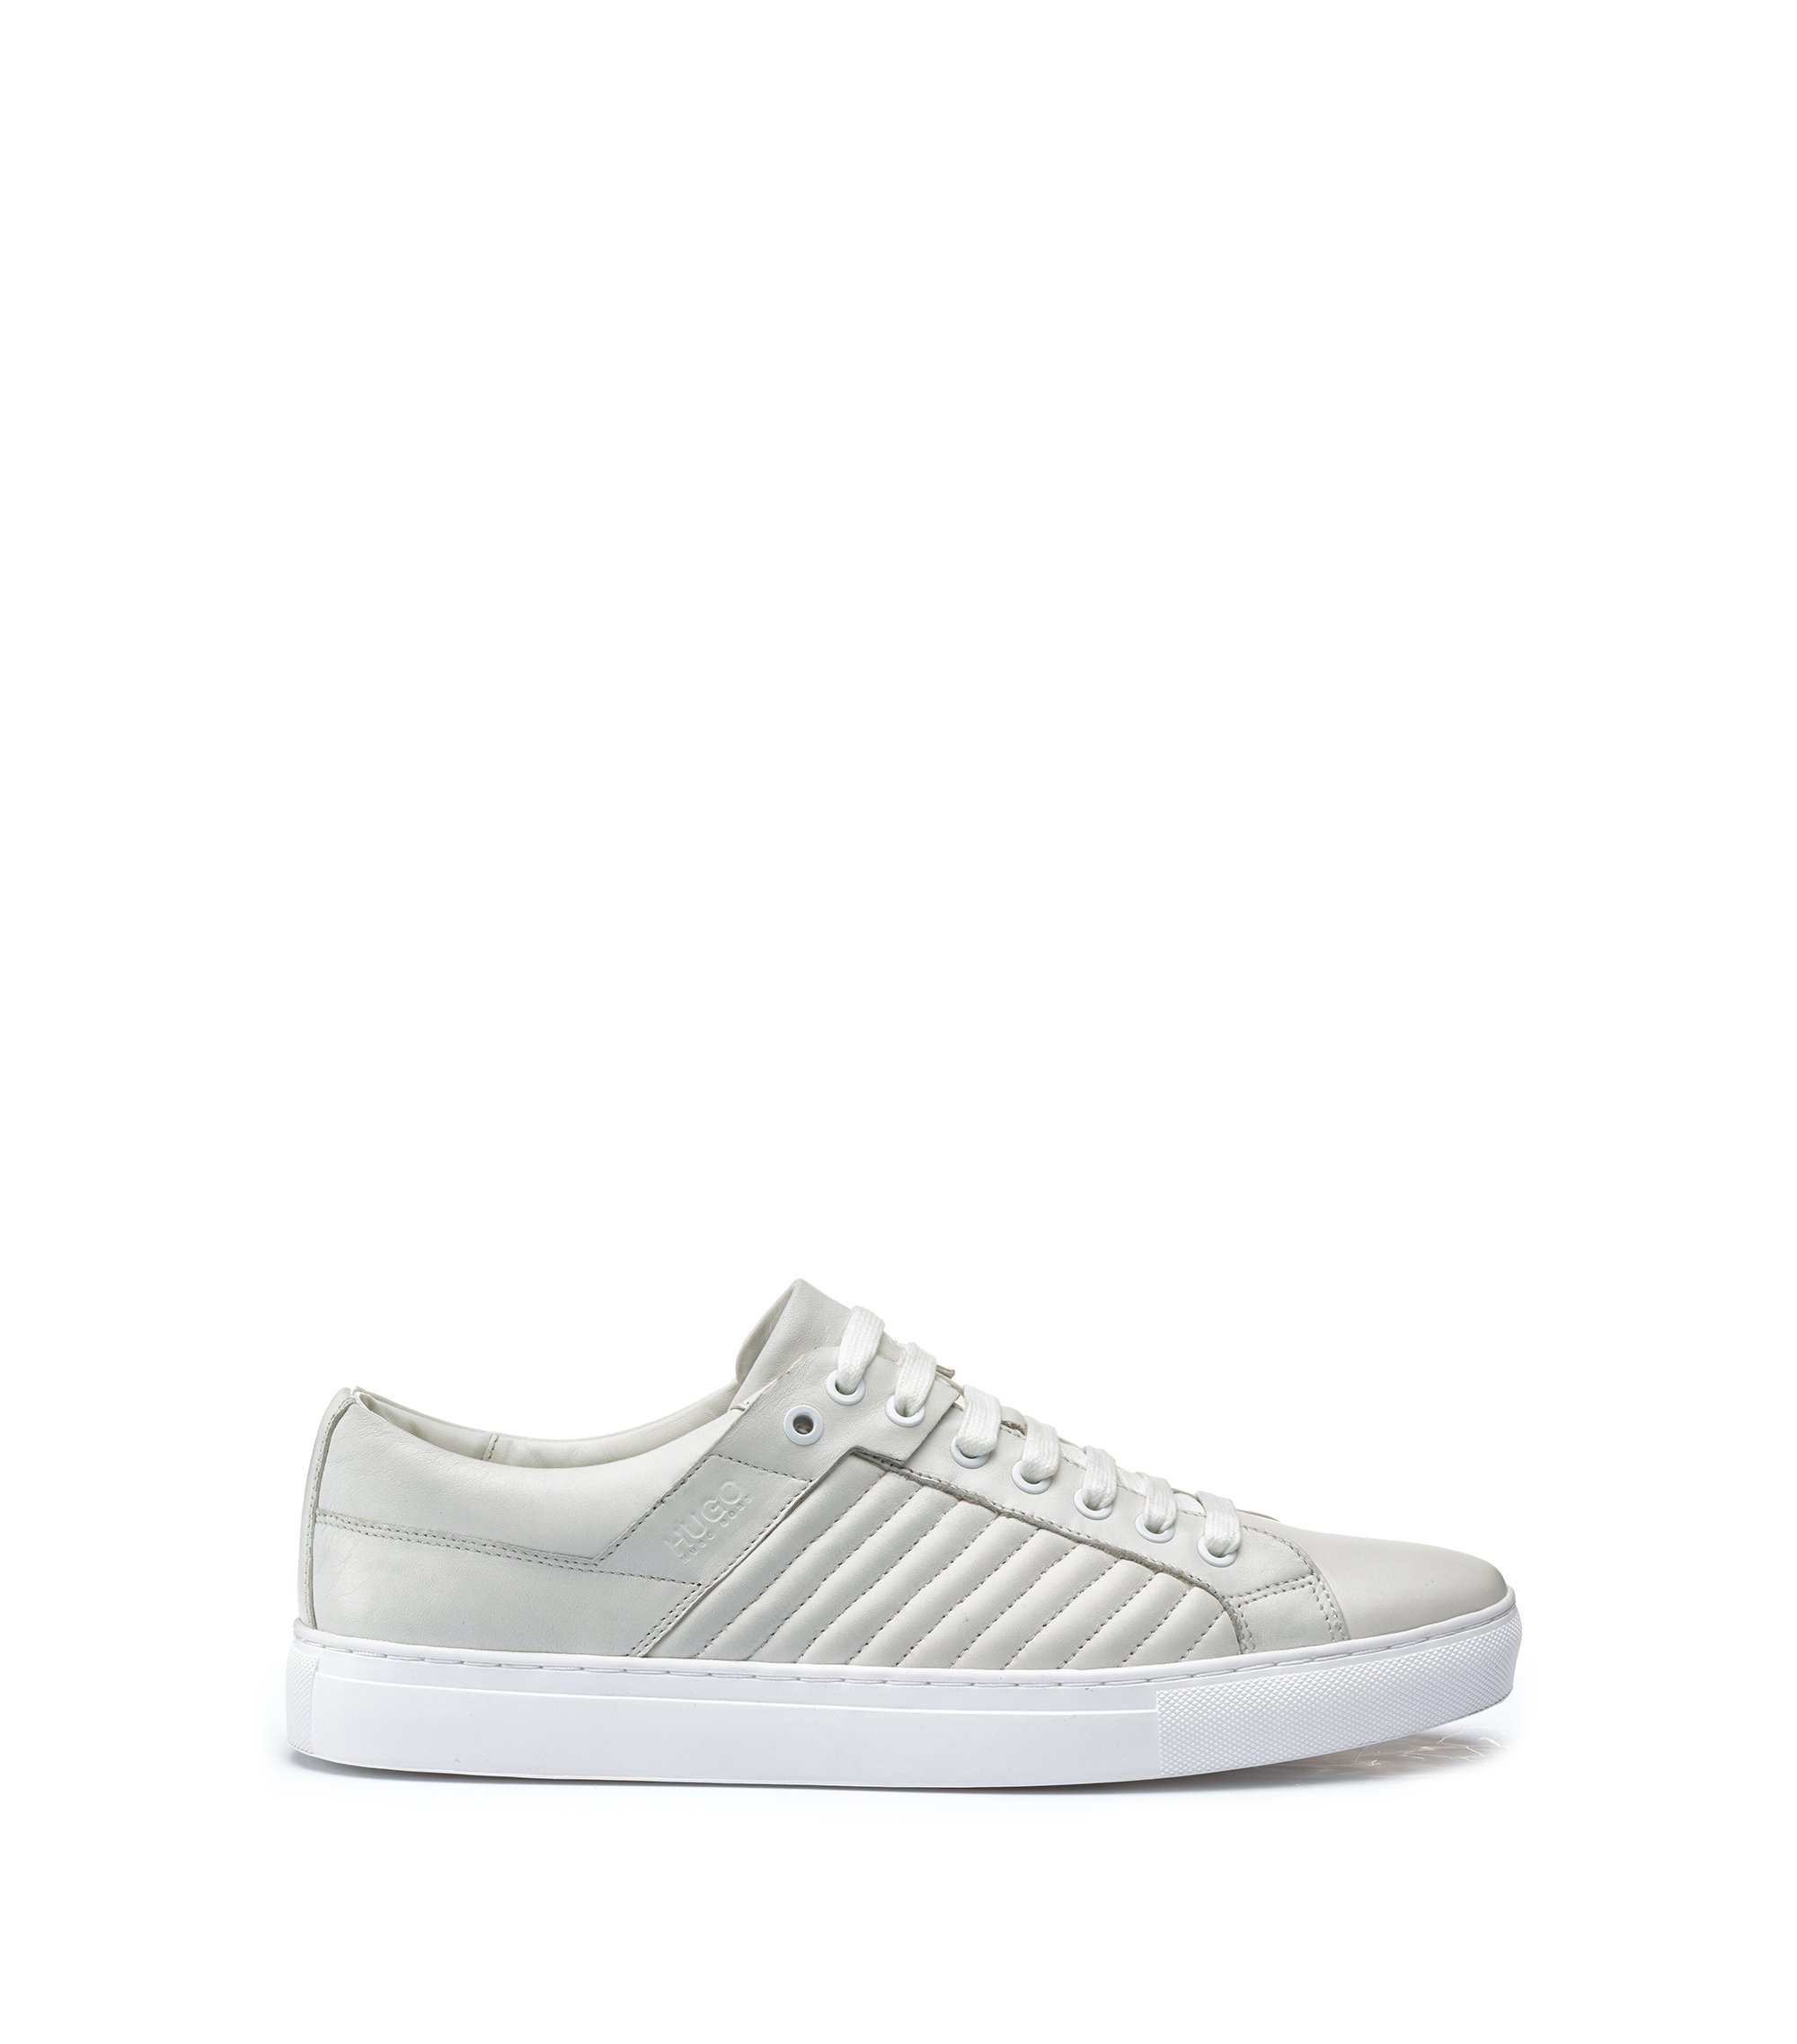 Tennis-style trainers in lambskin with matelassé detailing, Weiß